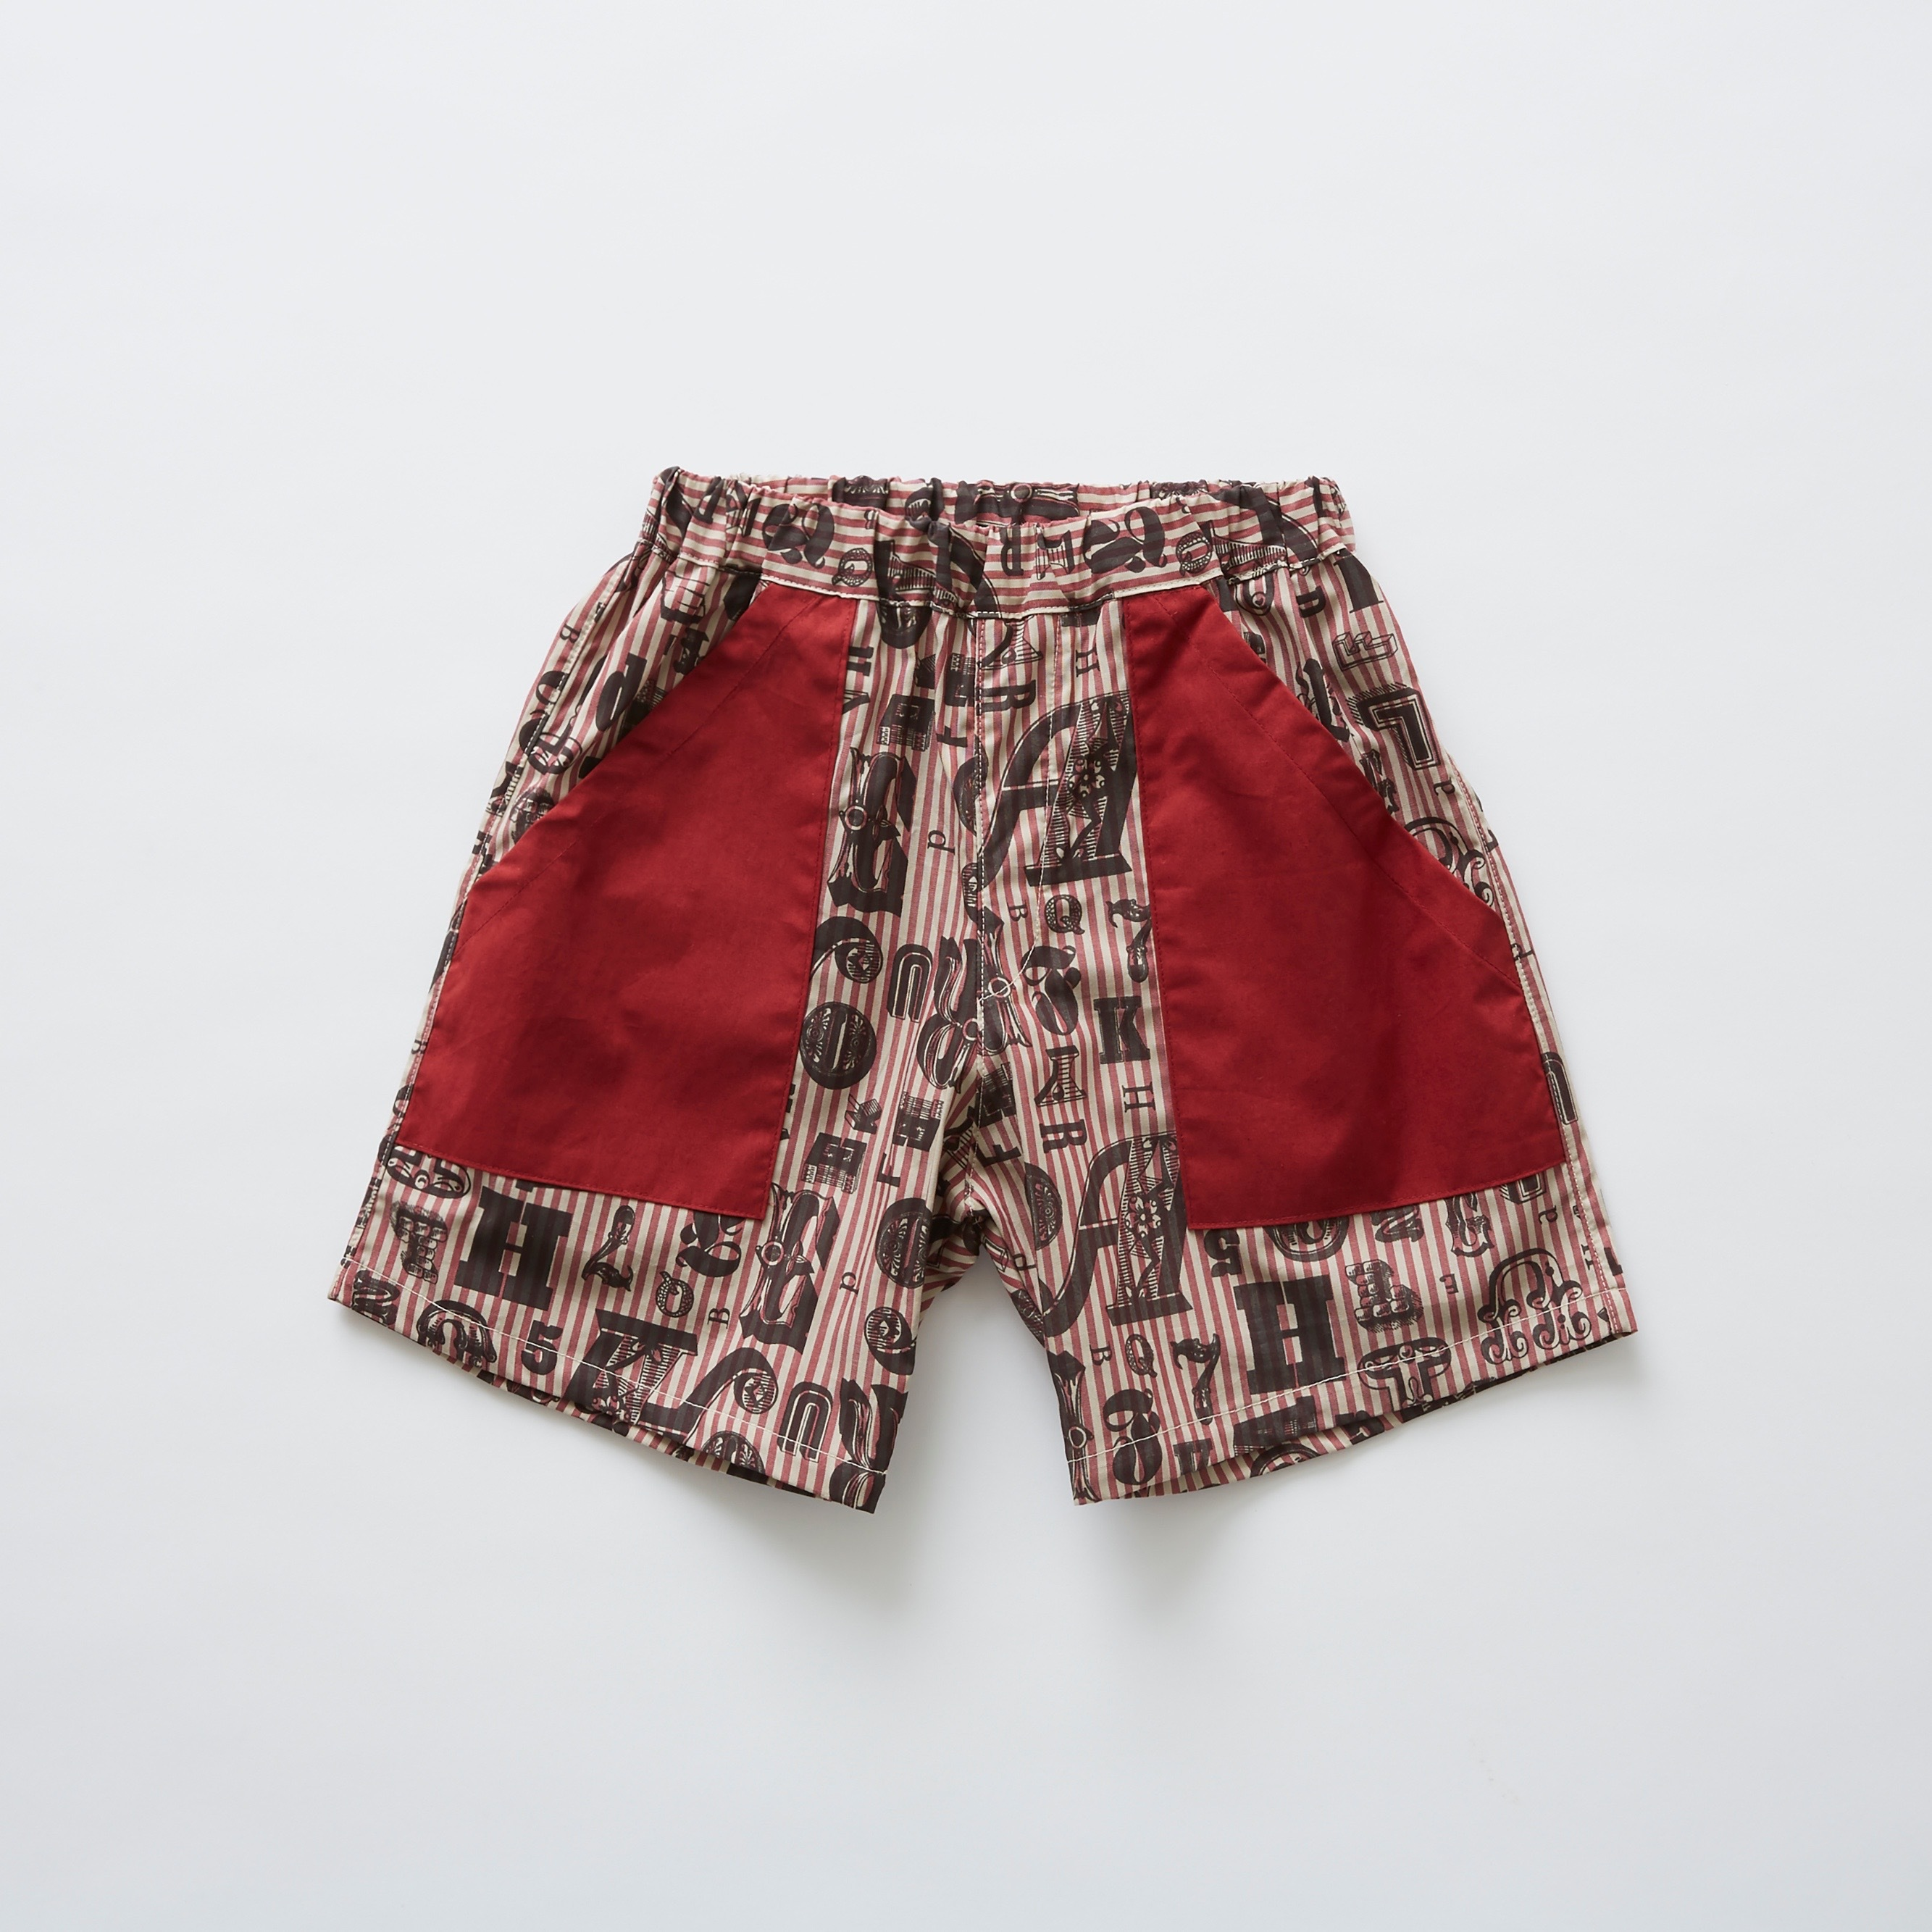 《eLfinFolk 2019SS》stripe × alphabetic print shorts / burgundy / 80-100cm